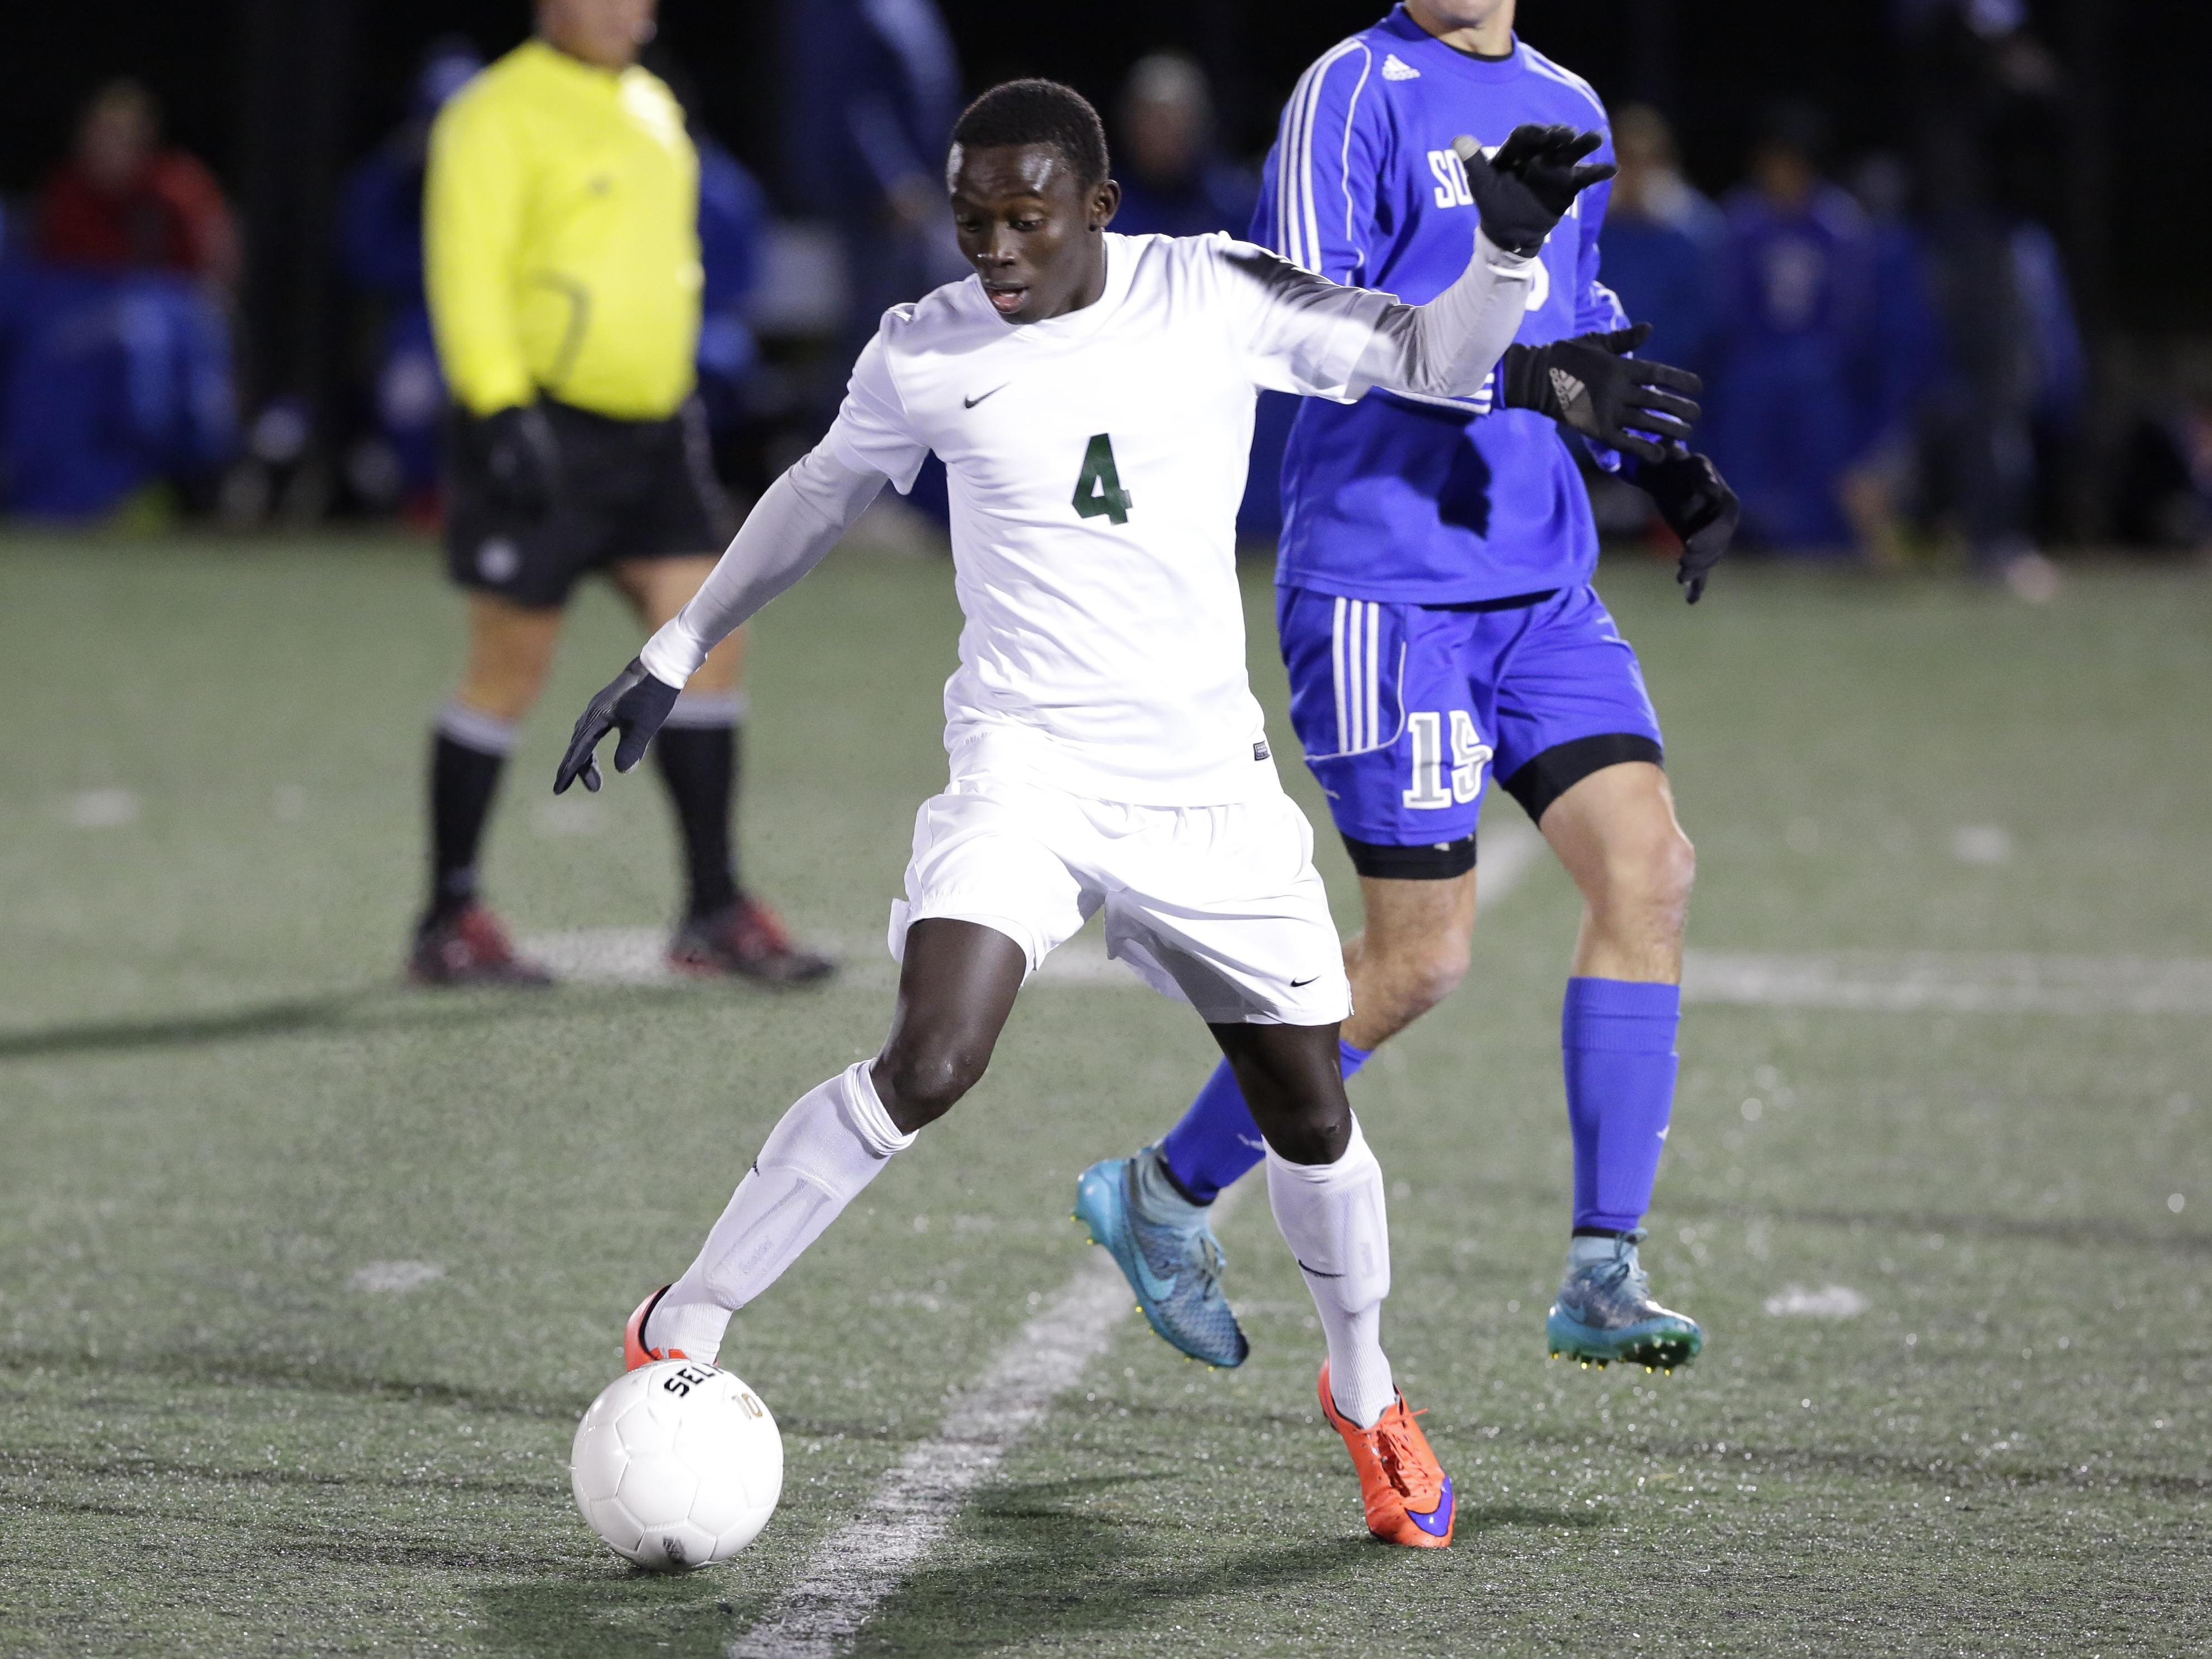 Oshkosh North's Lamin Jarju scored 27 goals this season and tallied nine assists as he helped the Spartans reach the sectional final game – the first time that's ever happened.